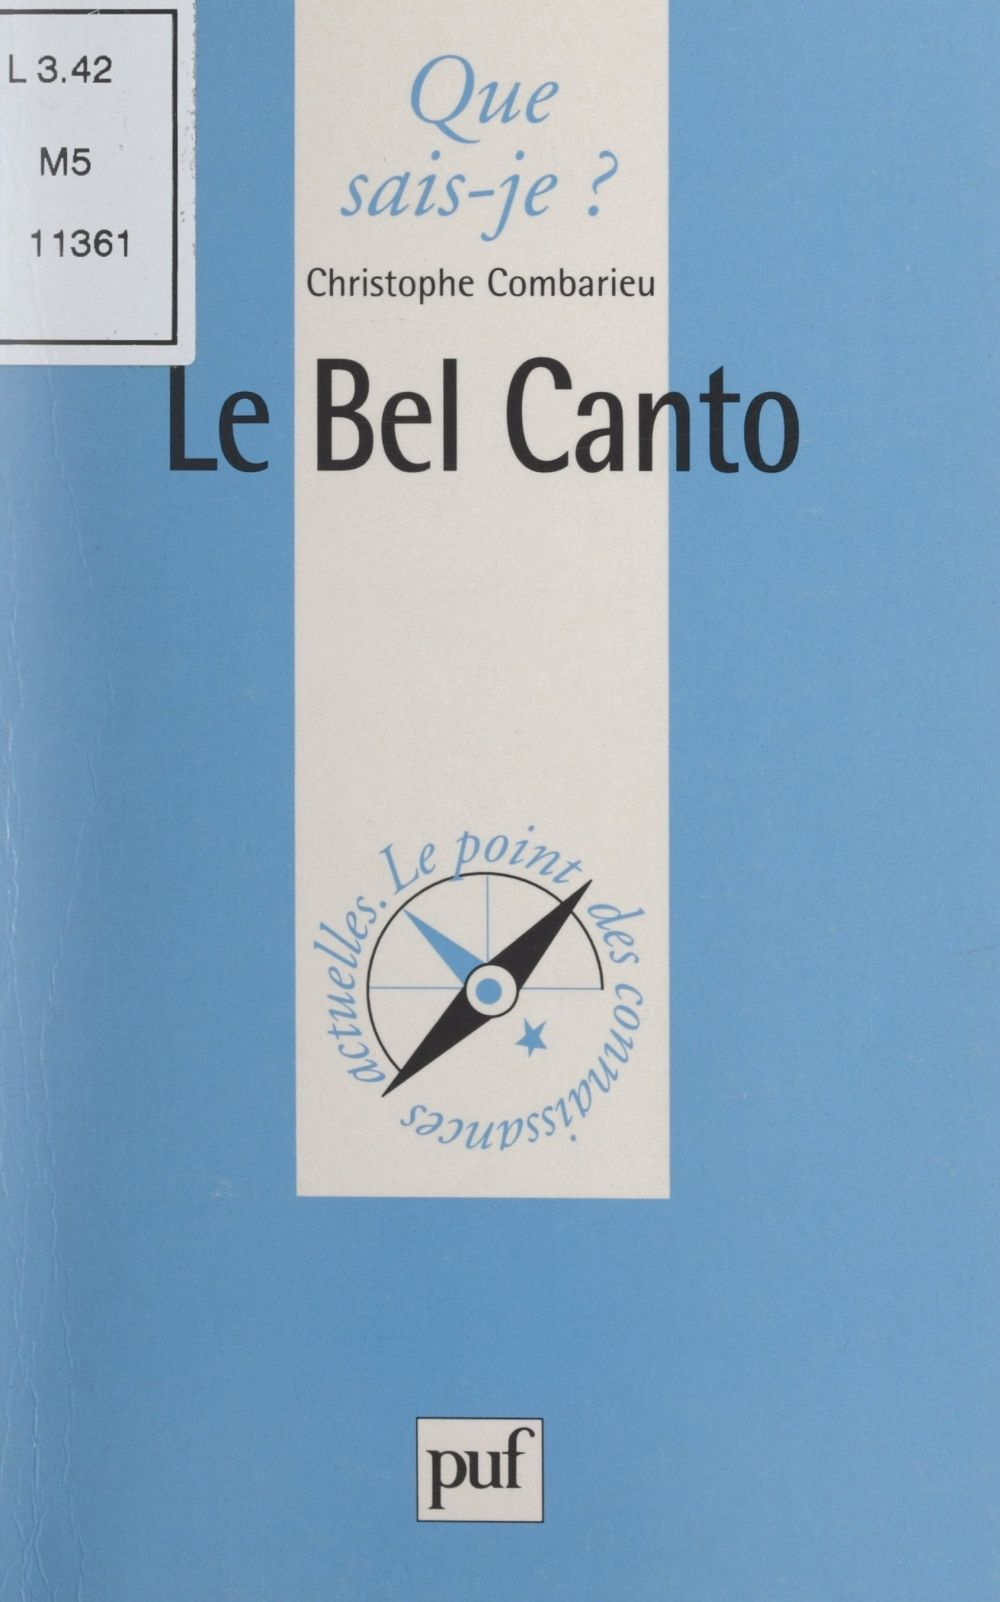 Le Bel Canto